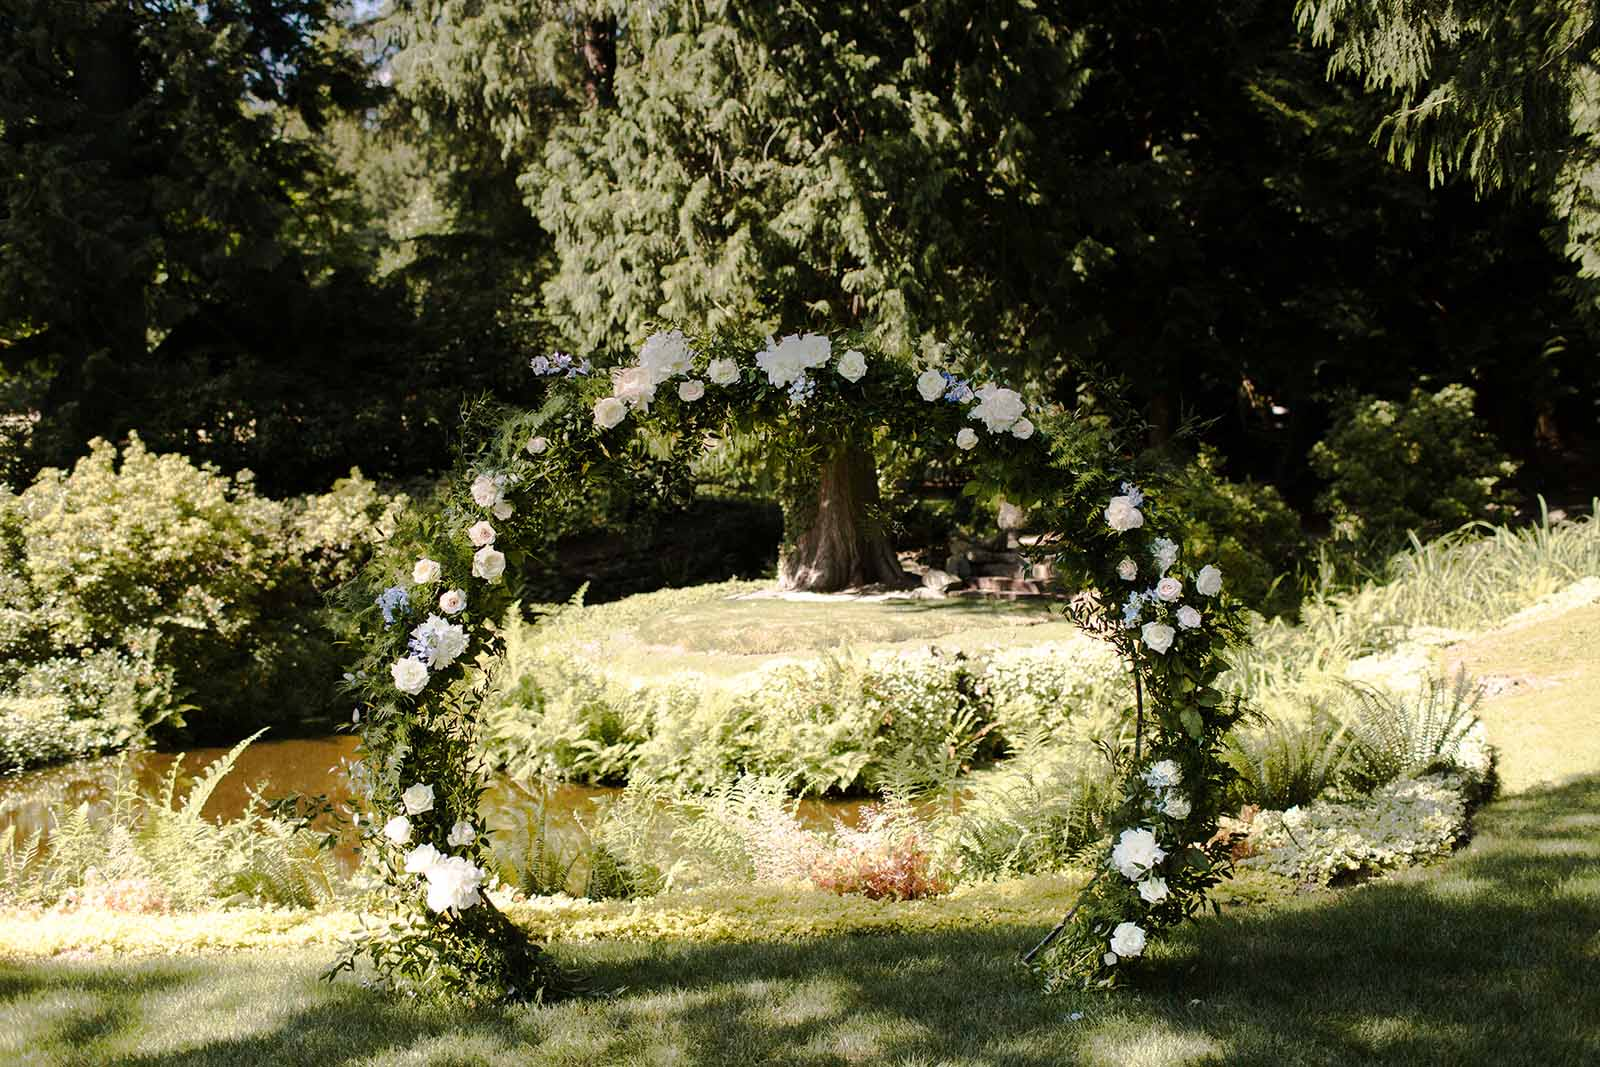 Circle arch under the trees at Chateau Lille, designed by Flora Nova Design, Seattle